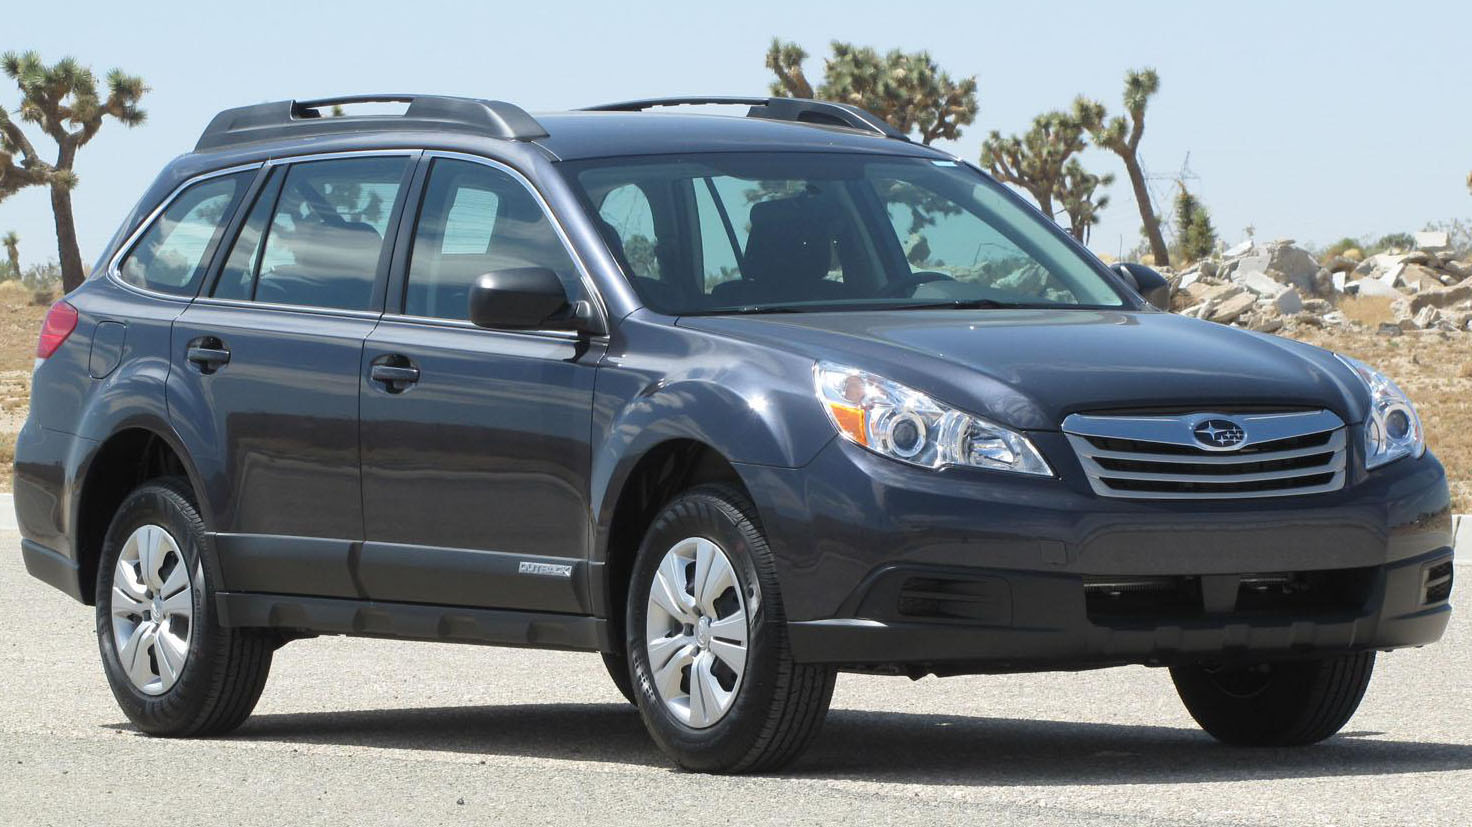 Subaru Outback Wiki – transport